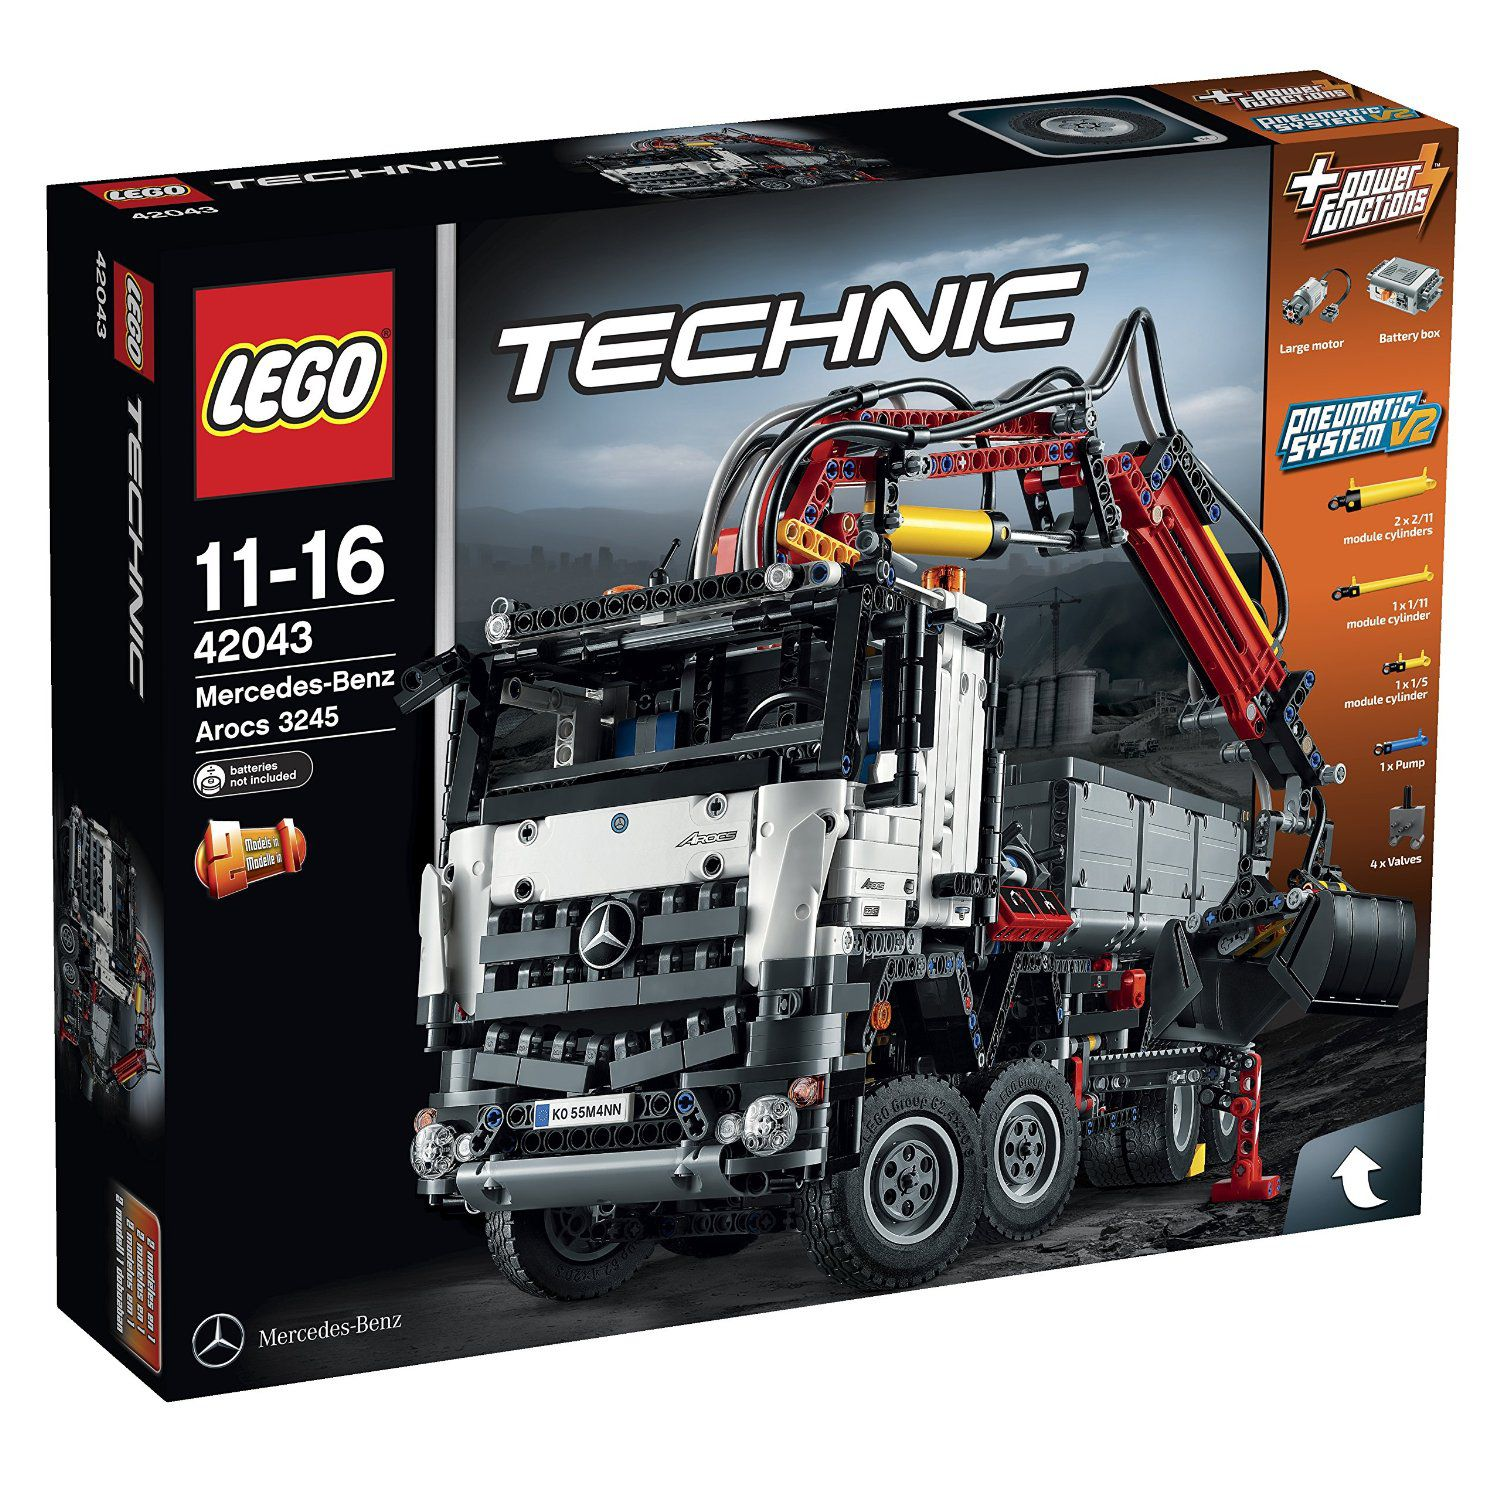 LEGO Technic 42043 Mercedes Benz Arocs 3245 42043-1_box.jpg